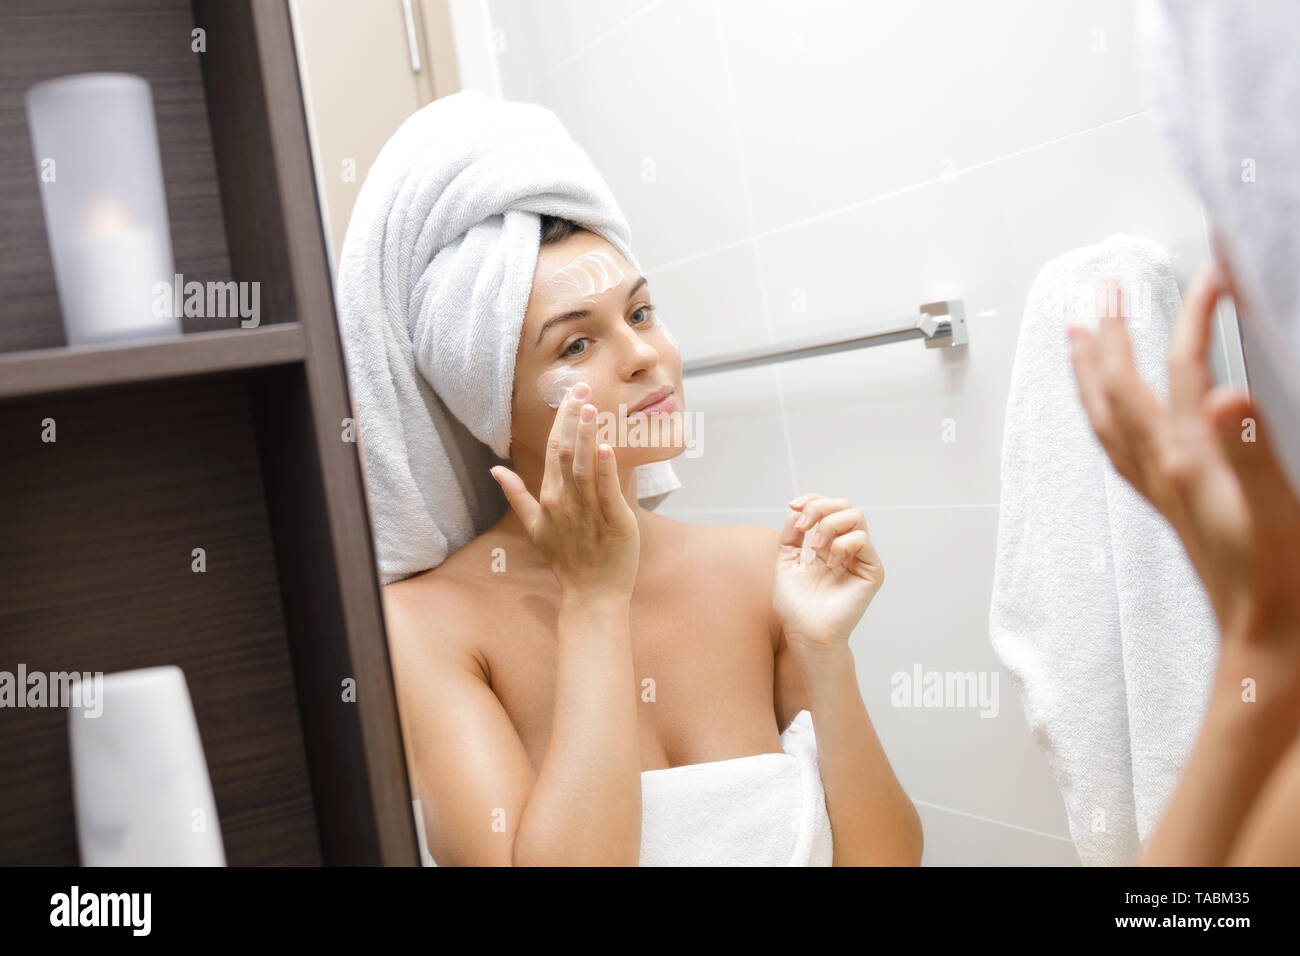 Beautiful young woman in bathroom with moisturizing and anti-aging cream applied on her face - Stock Image